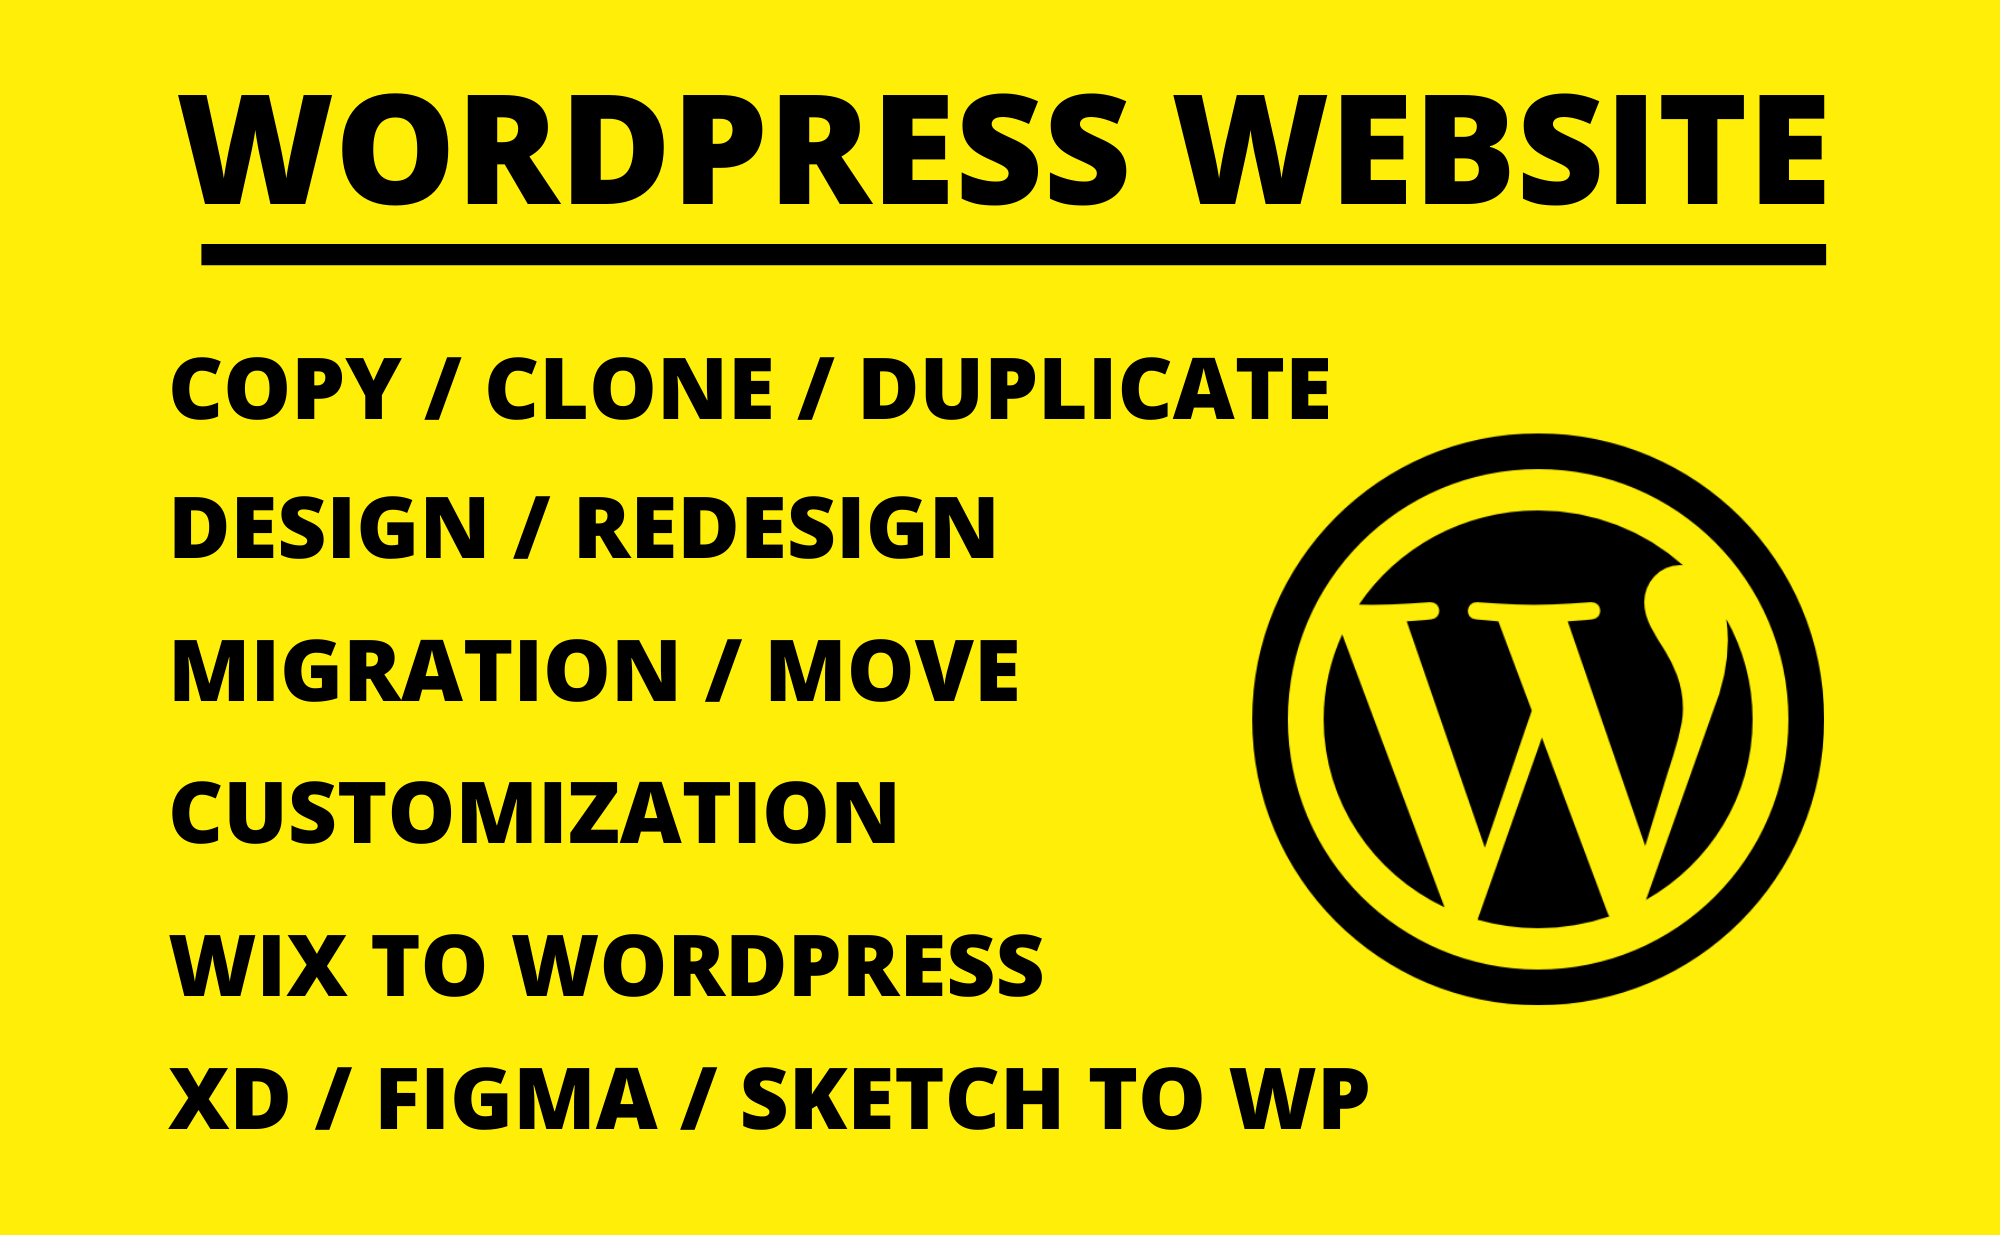 Design,  redesign,  copy / clone,  migration / move,  customize WordPress website,  Wix to WordPress